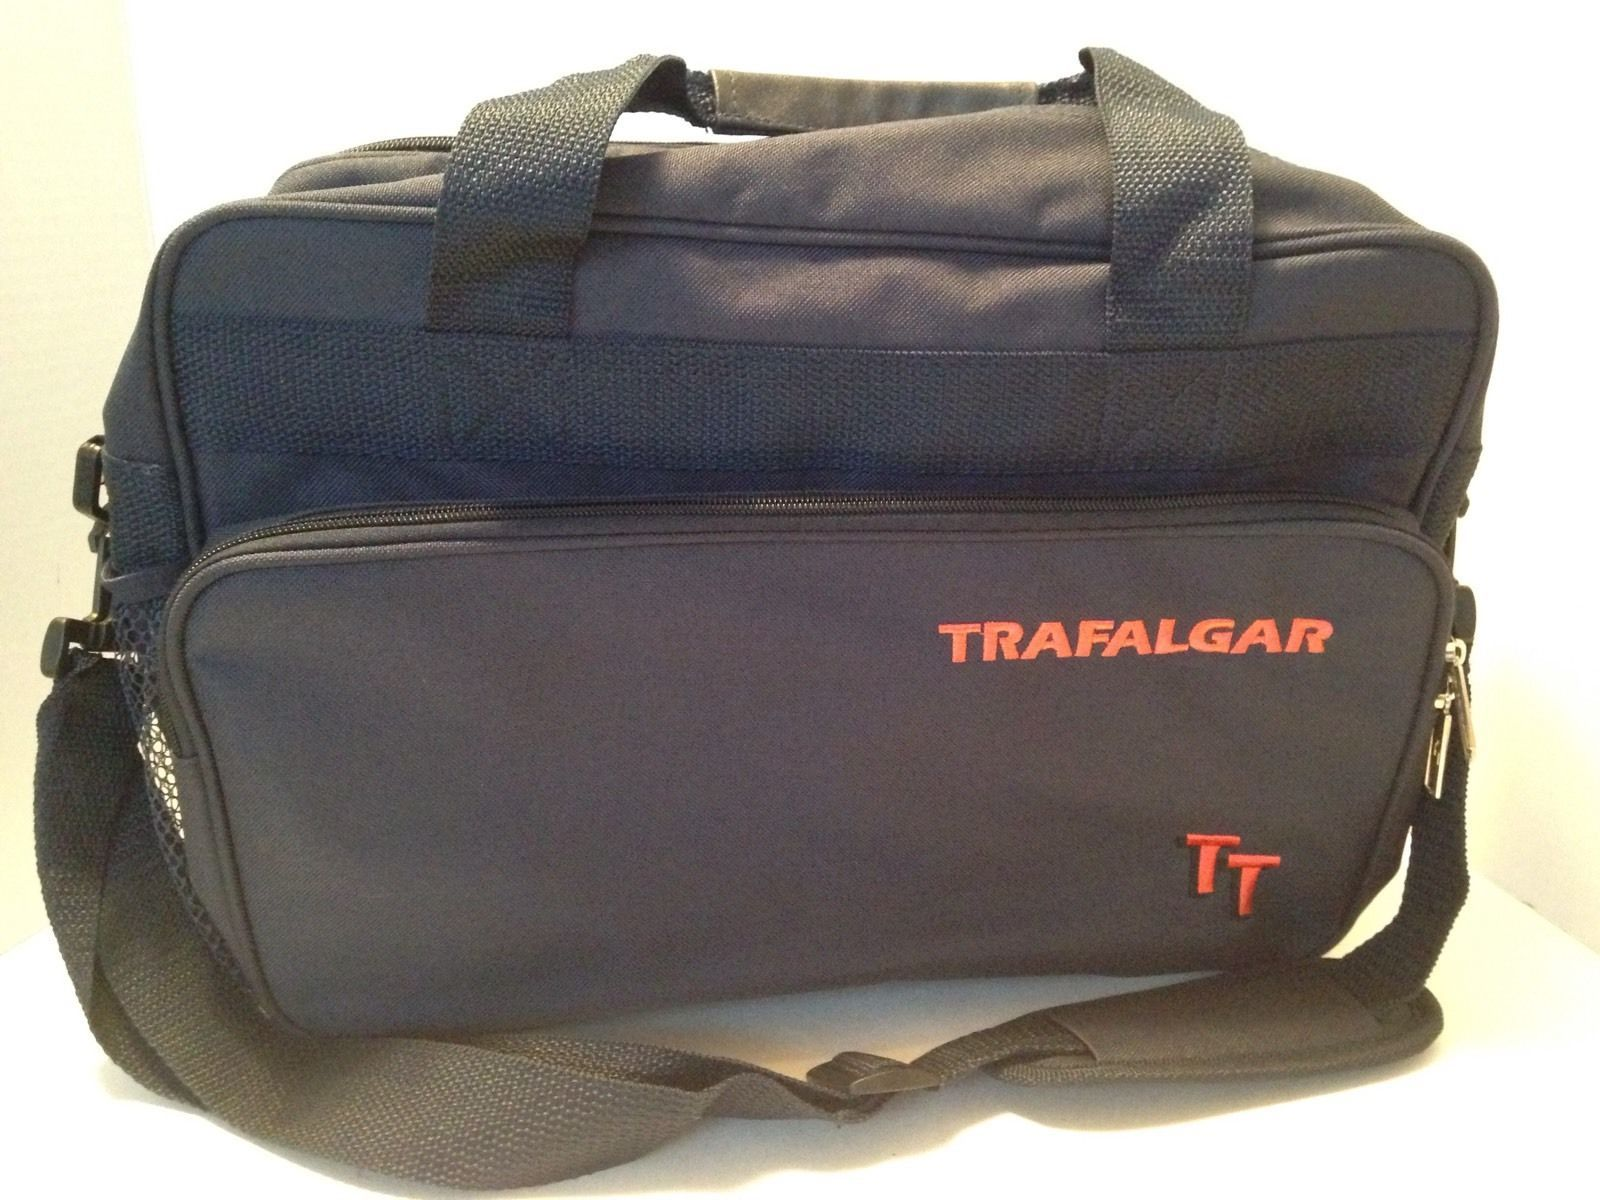 Trafalgar Tours Carry On Luggage